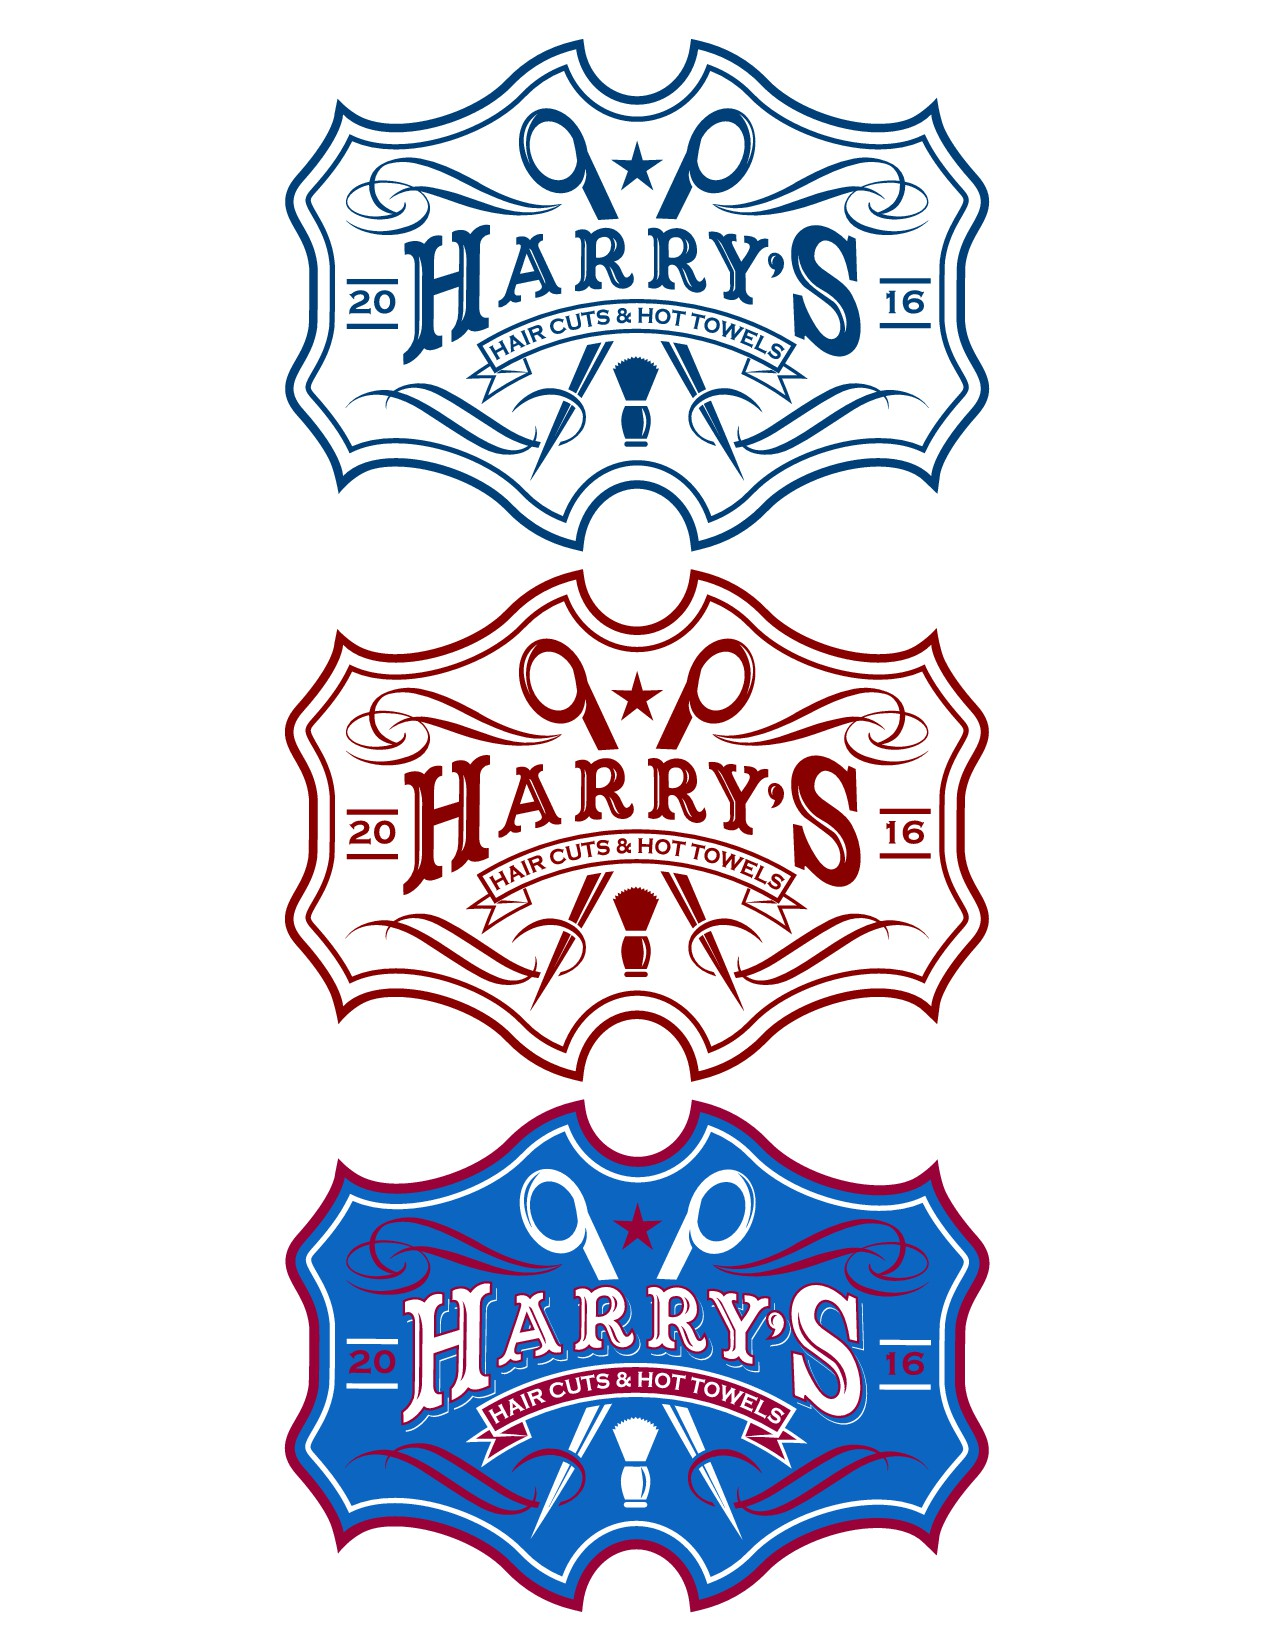 Create a logo for Harry's Haircuts and Hot Towels